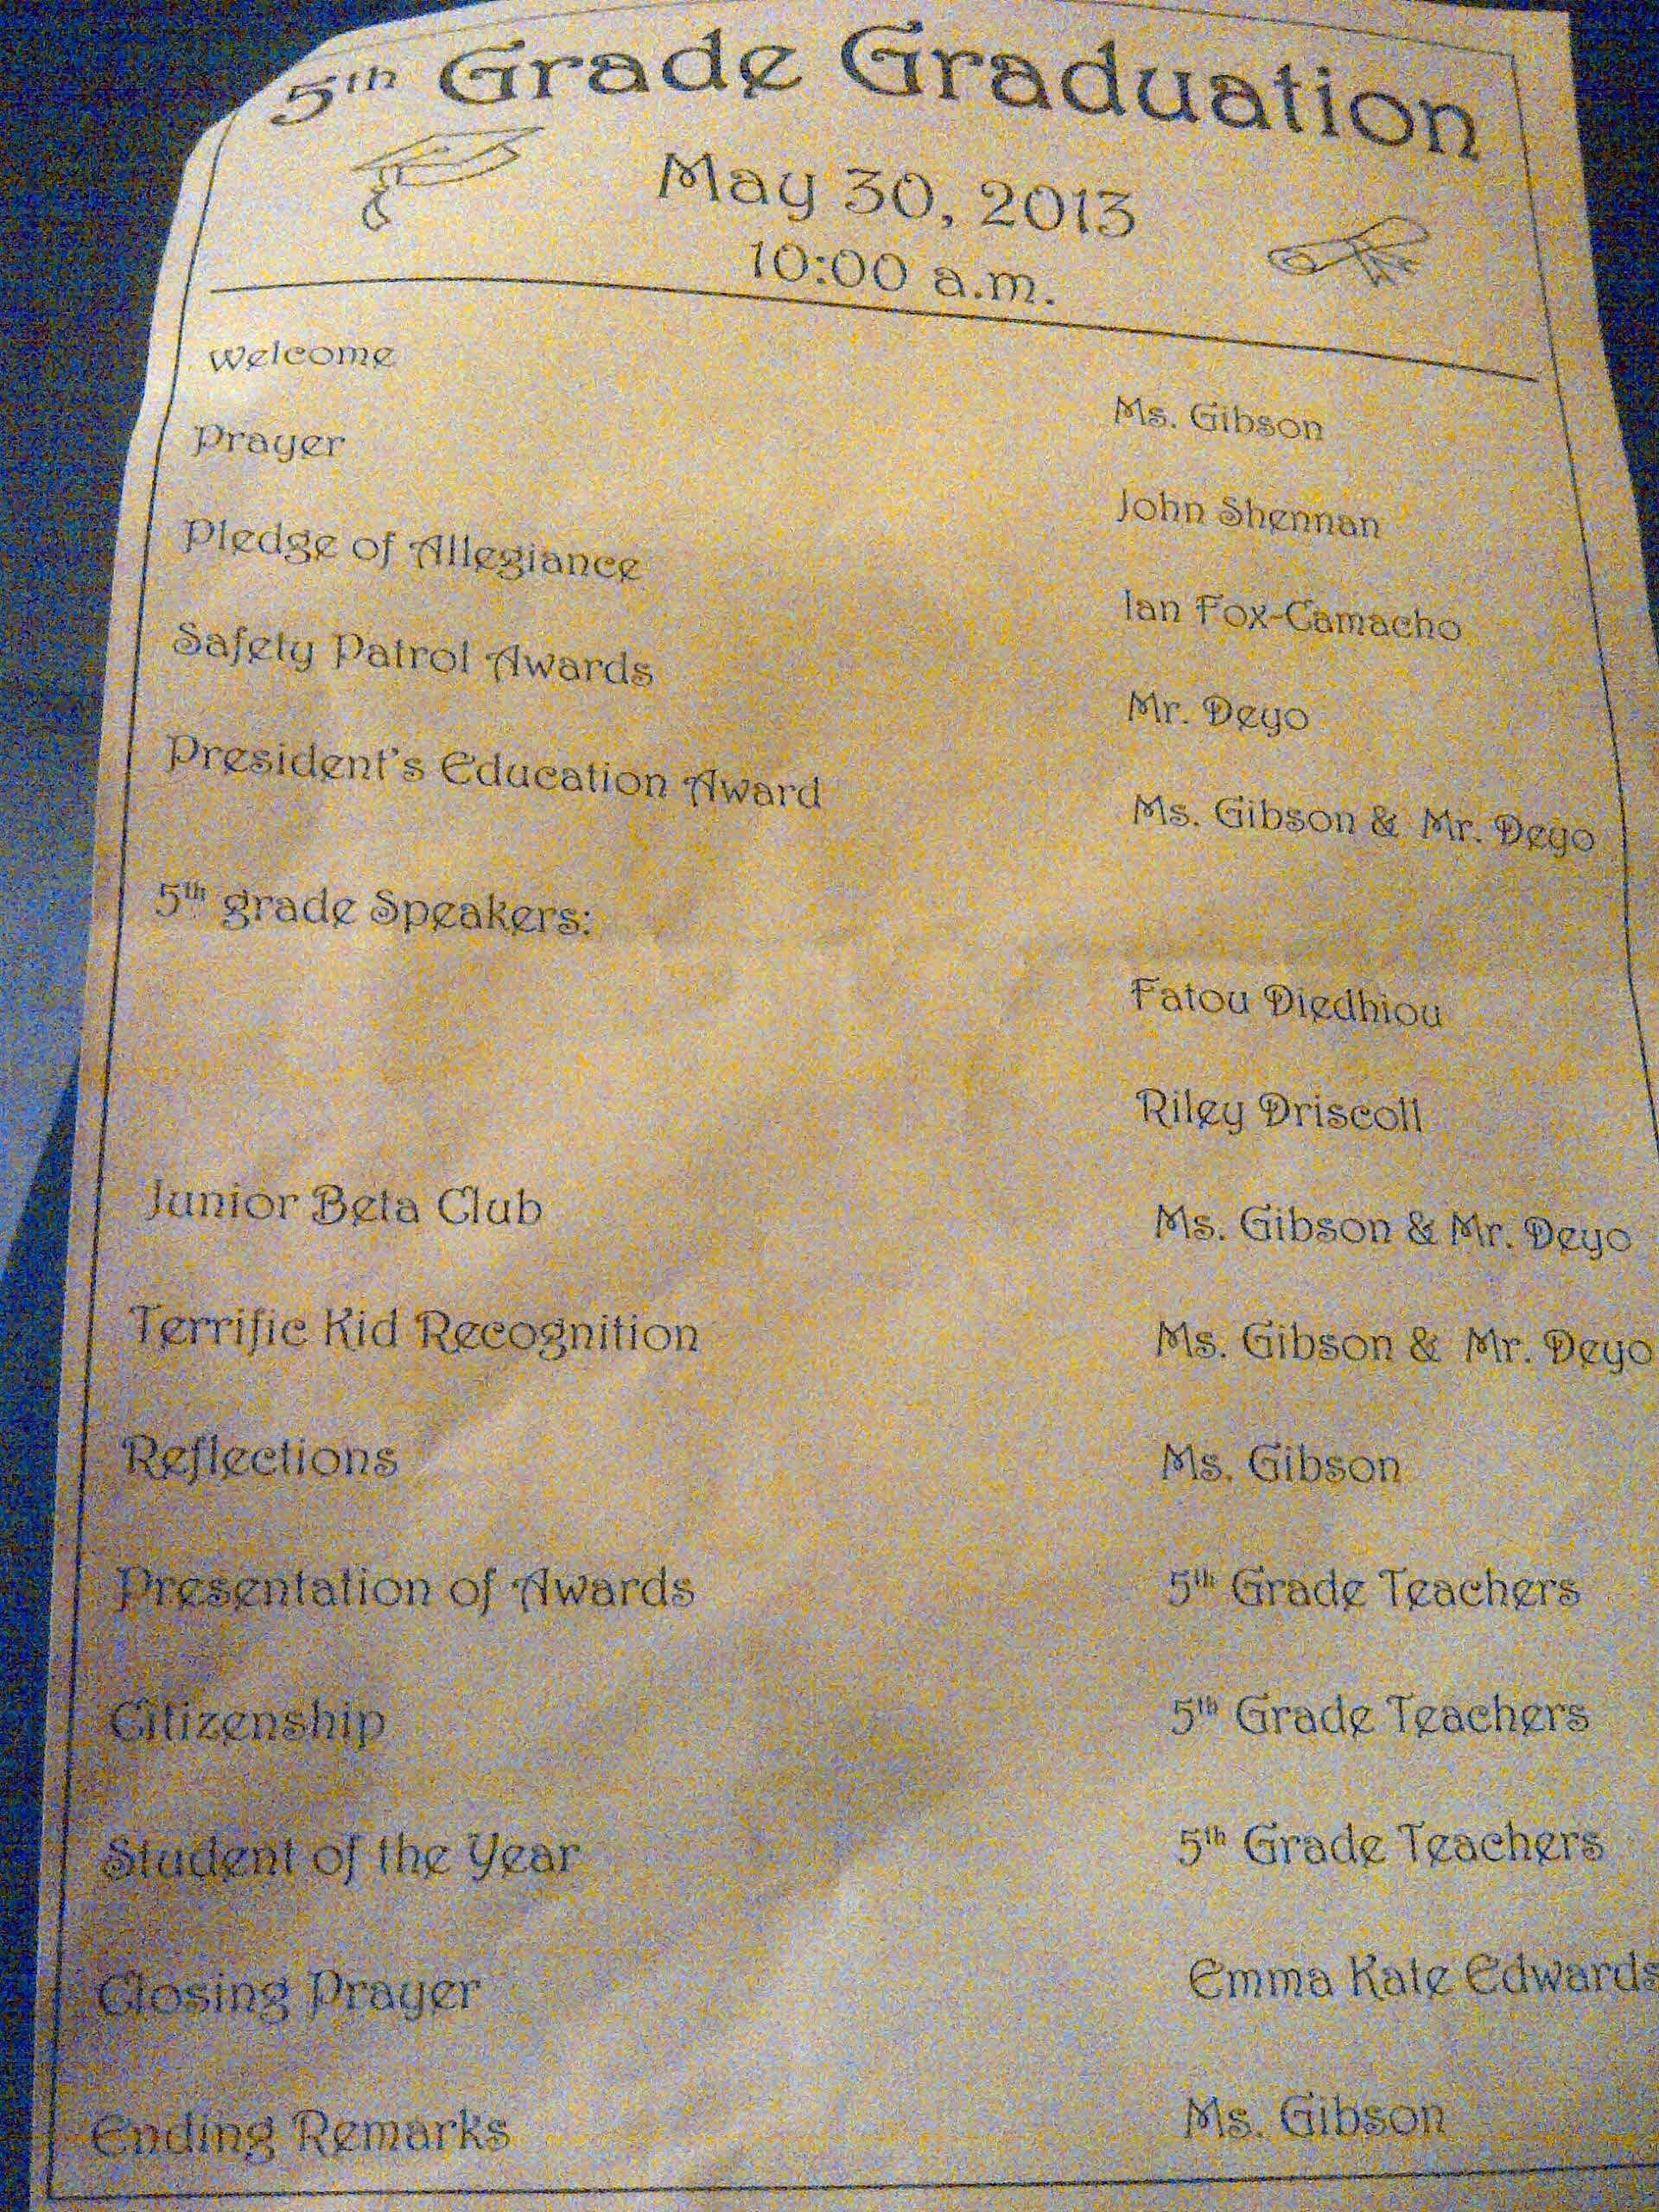 Graduation Ceremony Agenda Lovely Humanist Group Will Get Another Chance to Challenge